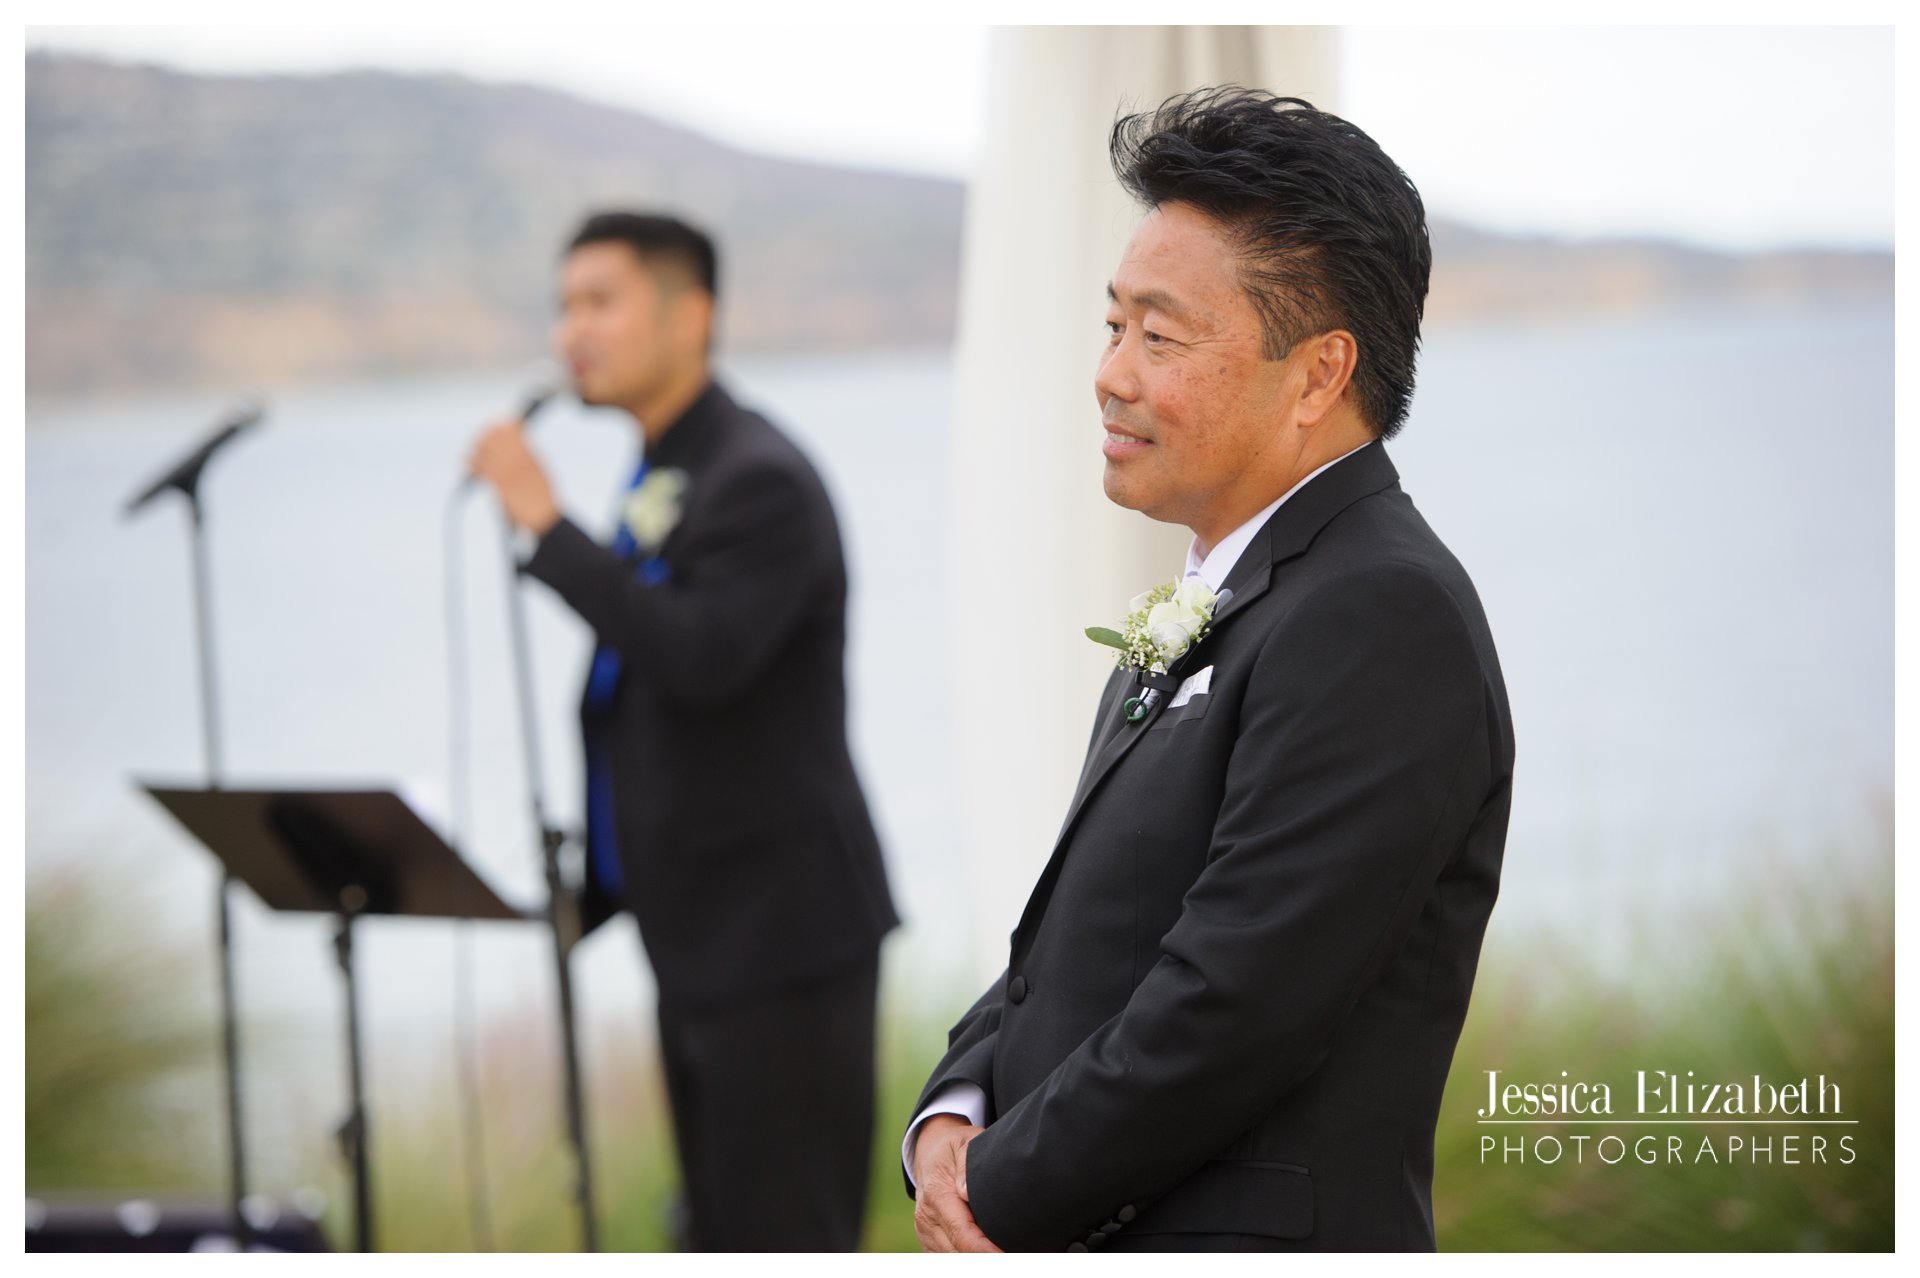 07-Terranea-Palos-Verdes-Wedding-Photography-by-Jessica-Elizabeth-w.jpg